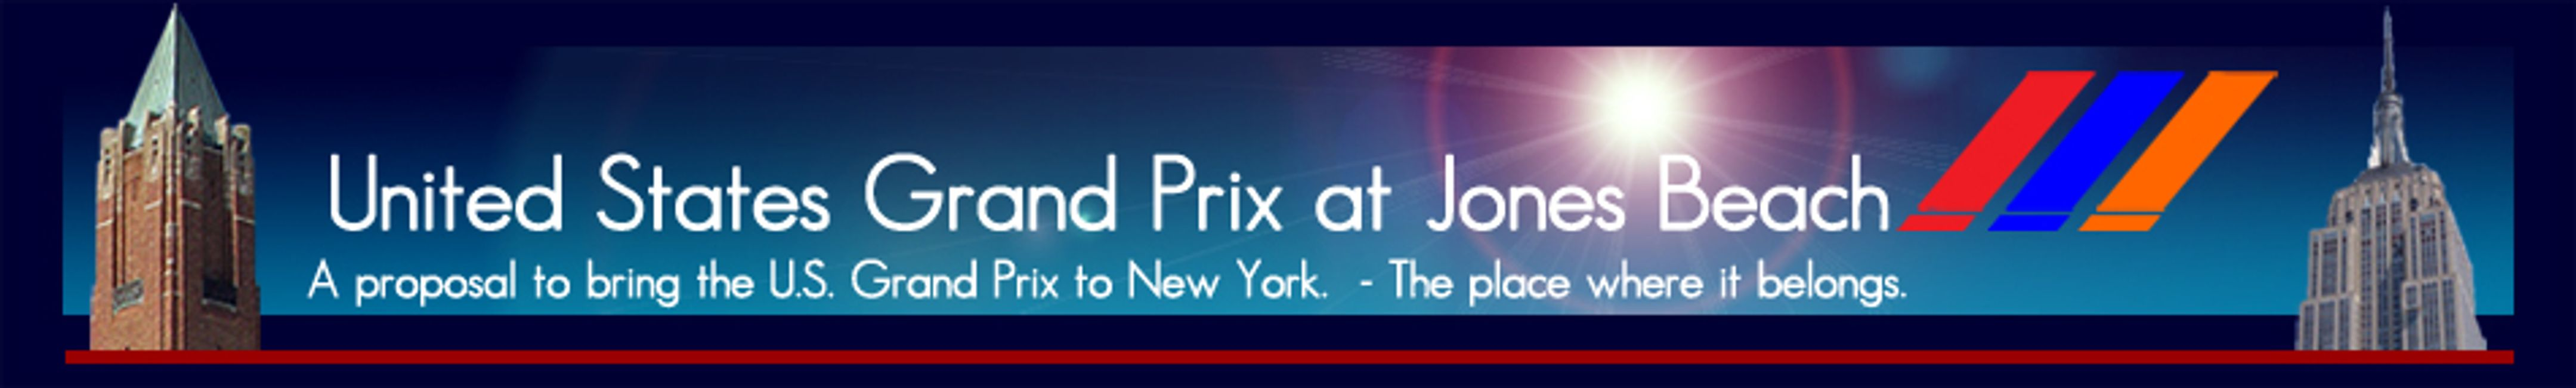 US Grand Prix at Jones beach Proposal to bring F1 to NY Formula 1 New York USGP New York USGP NY